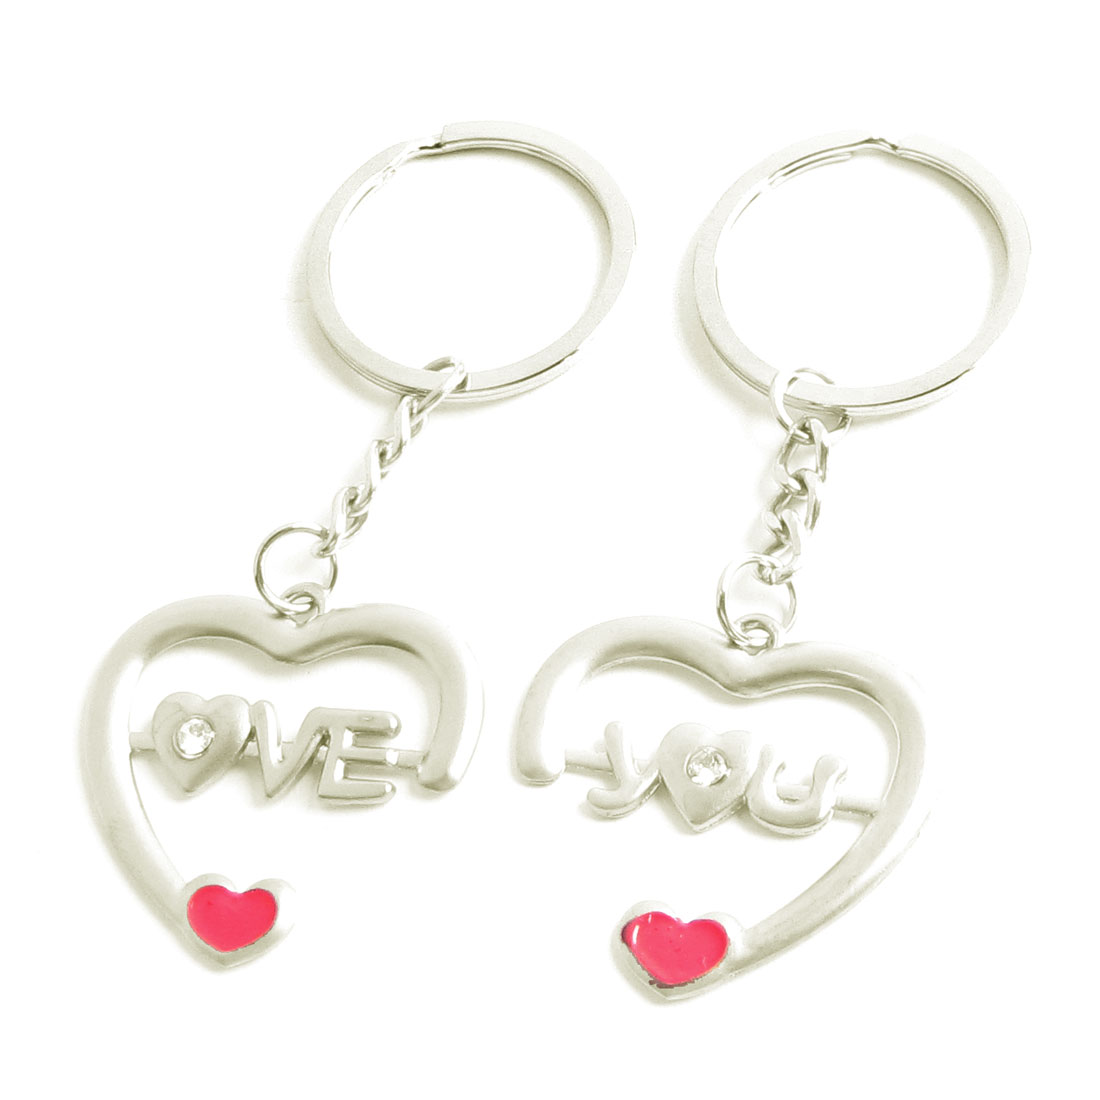 Couples Silver Tone Heart Designed Pendant Key Chains Ring Pair